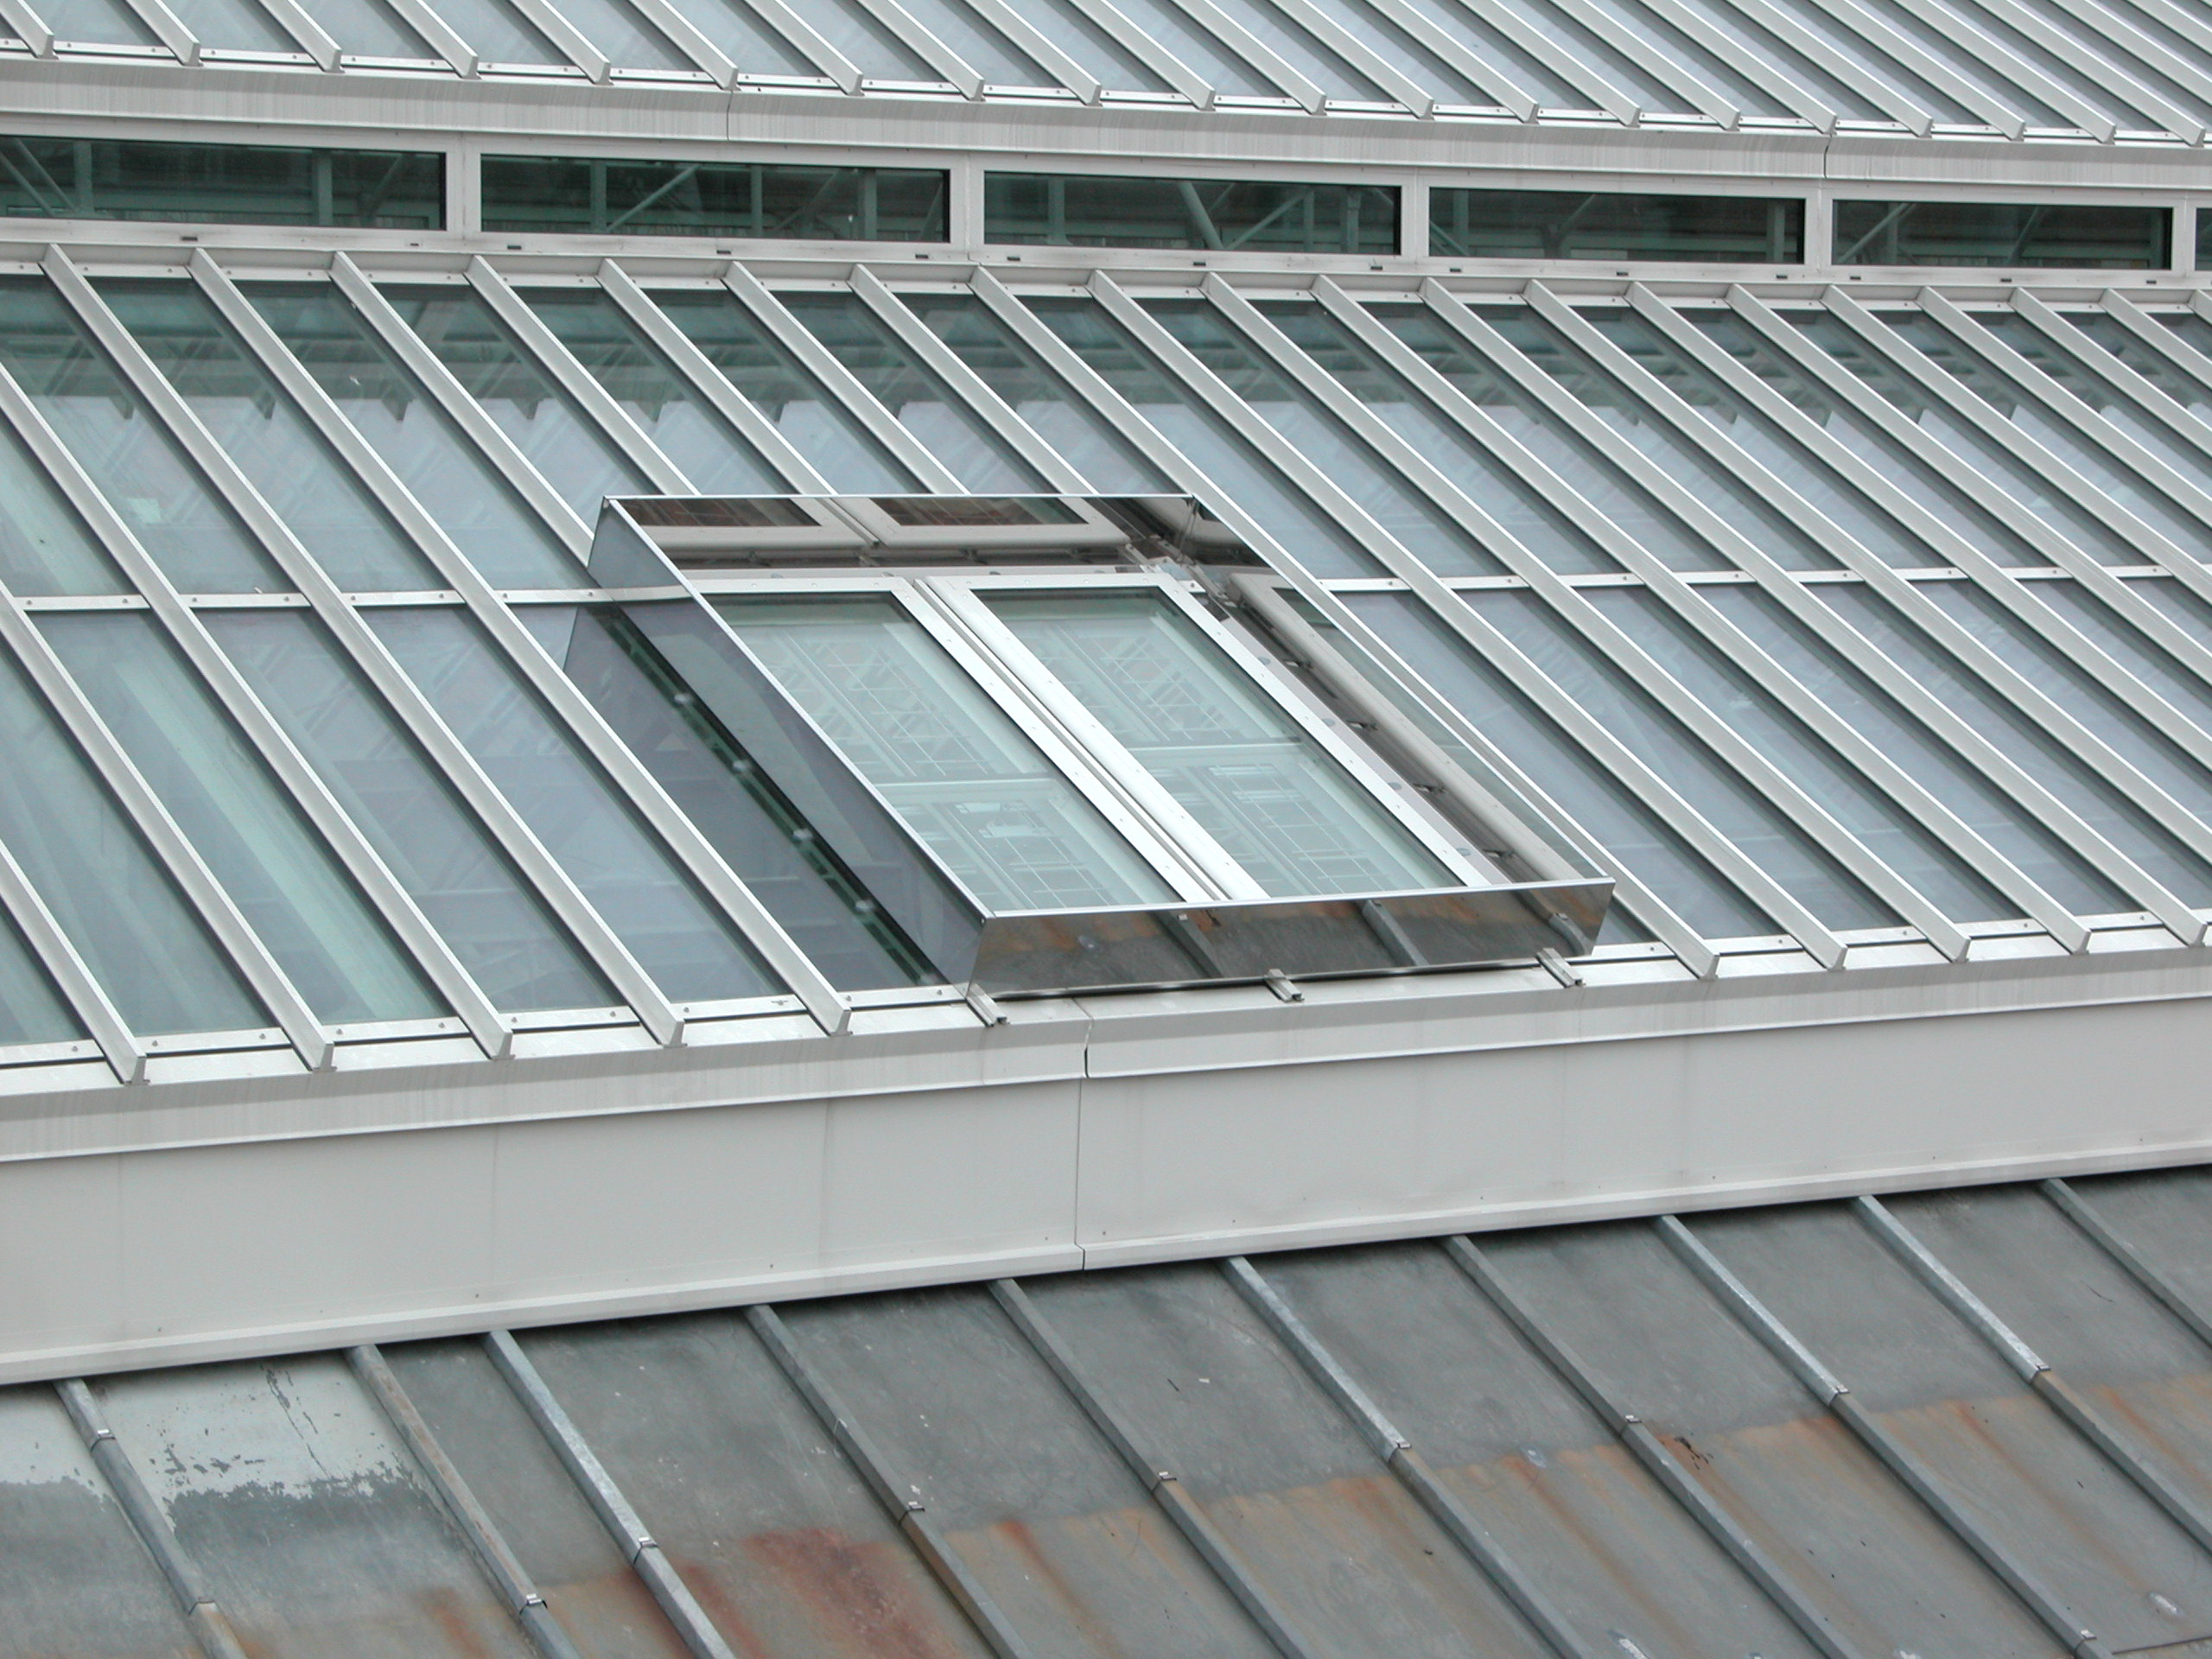 Photo of roof ventilation hatch